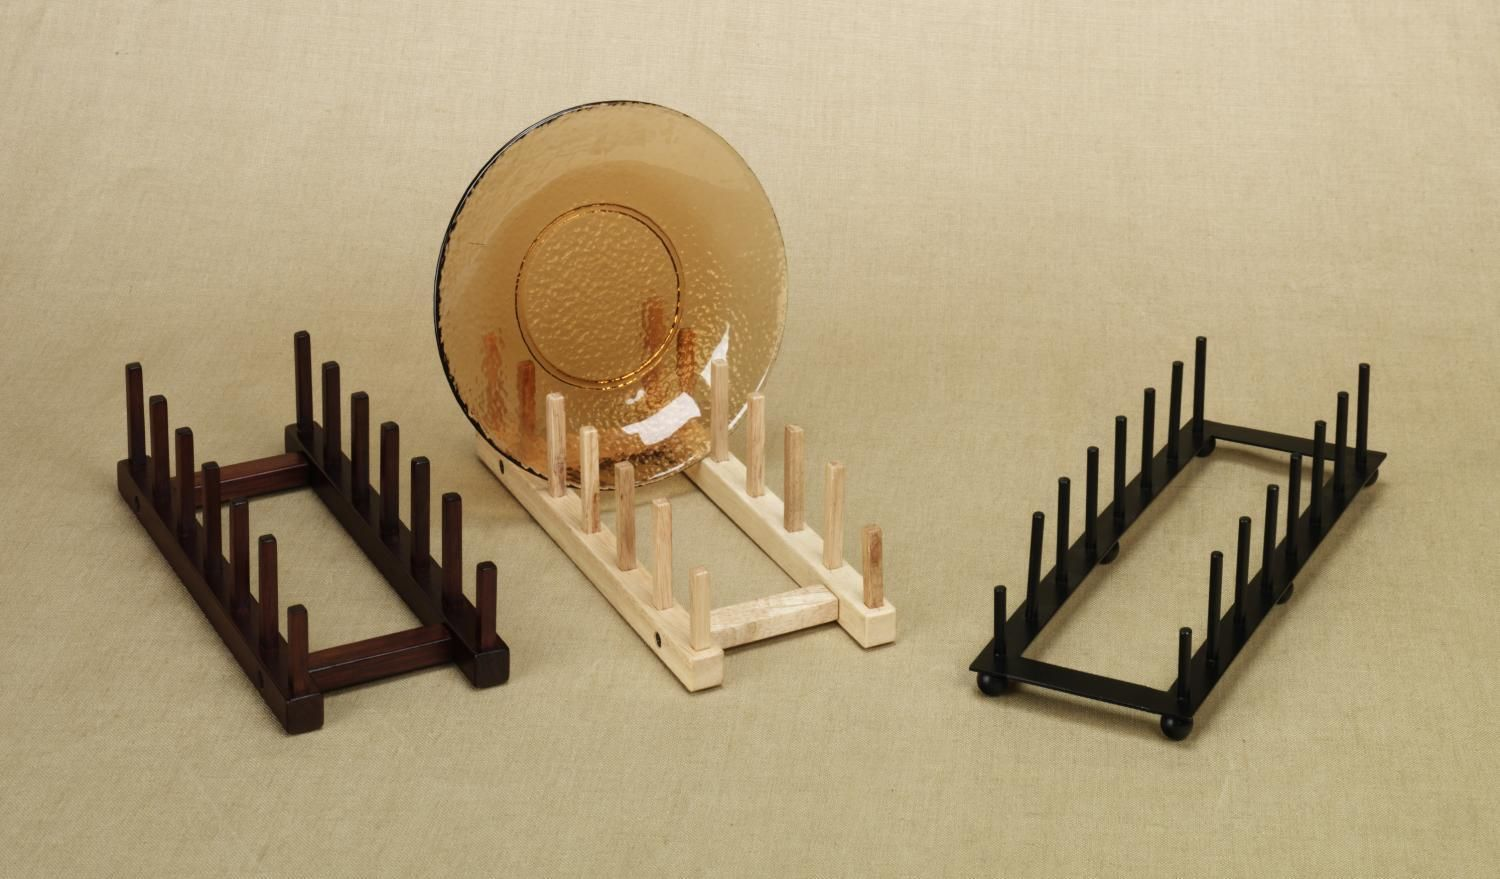 Wooden Plate Stands Display Stand Google Search Racks Pinterest 34